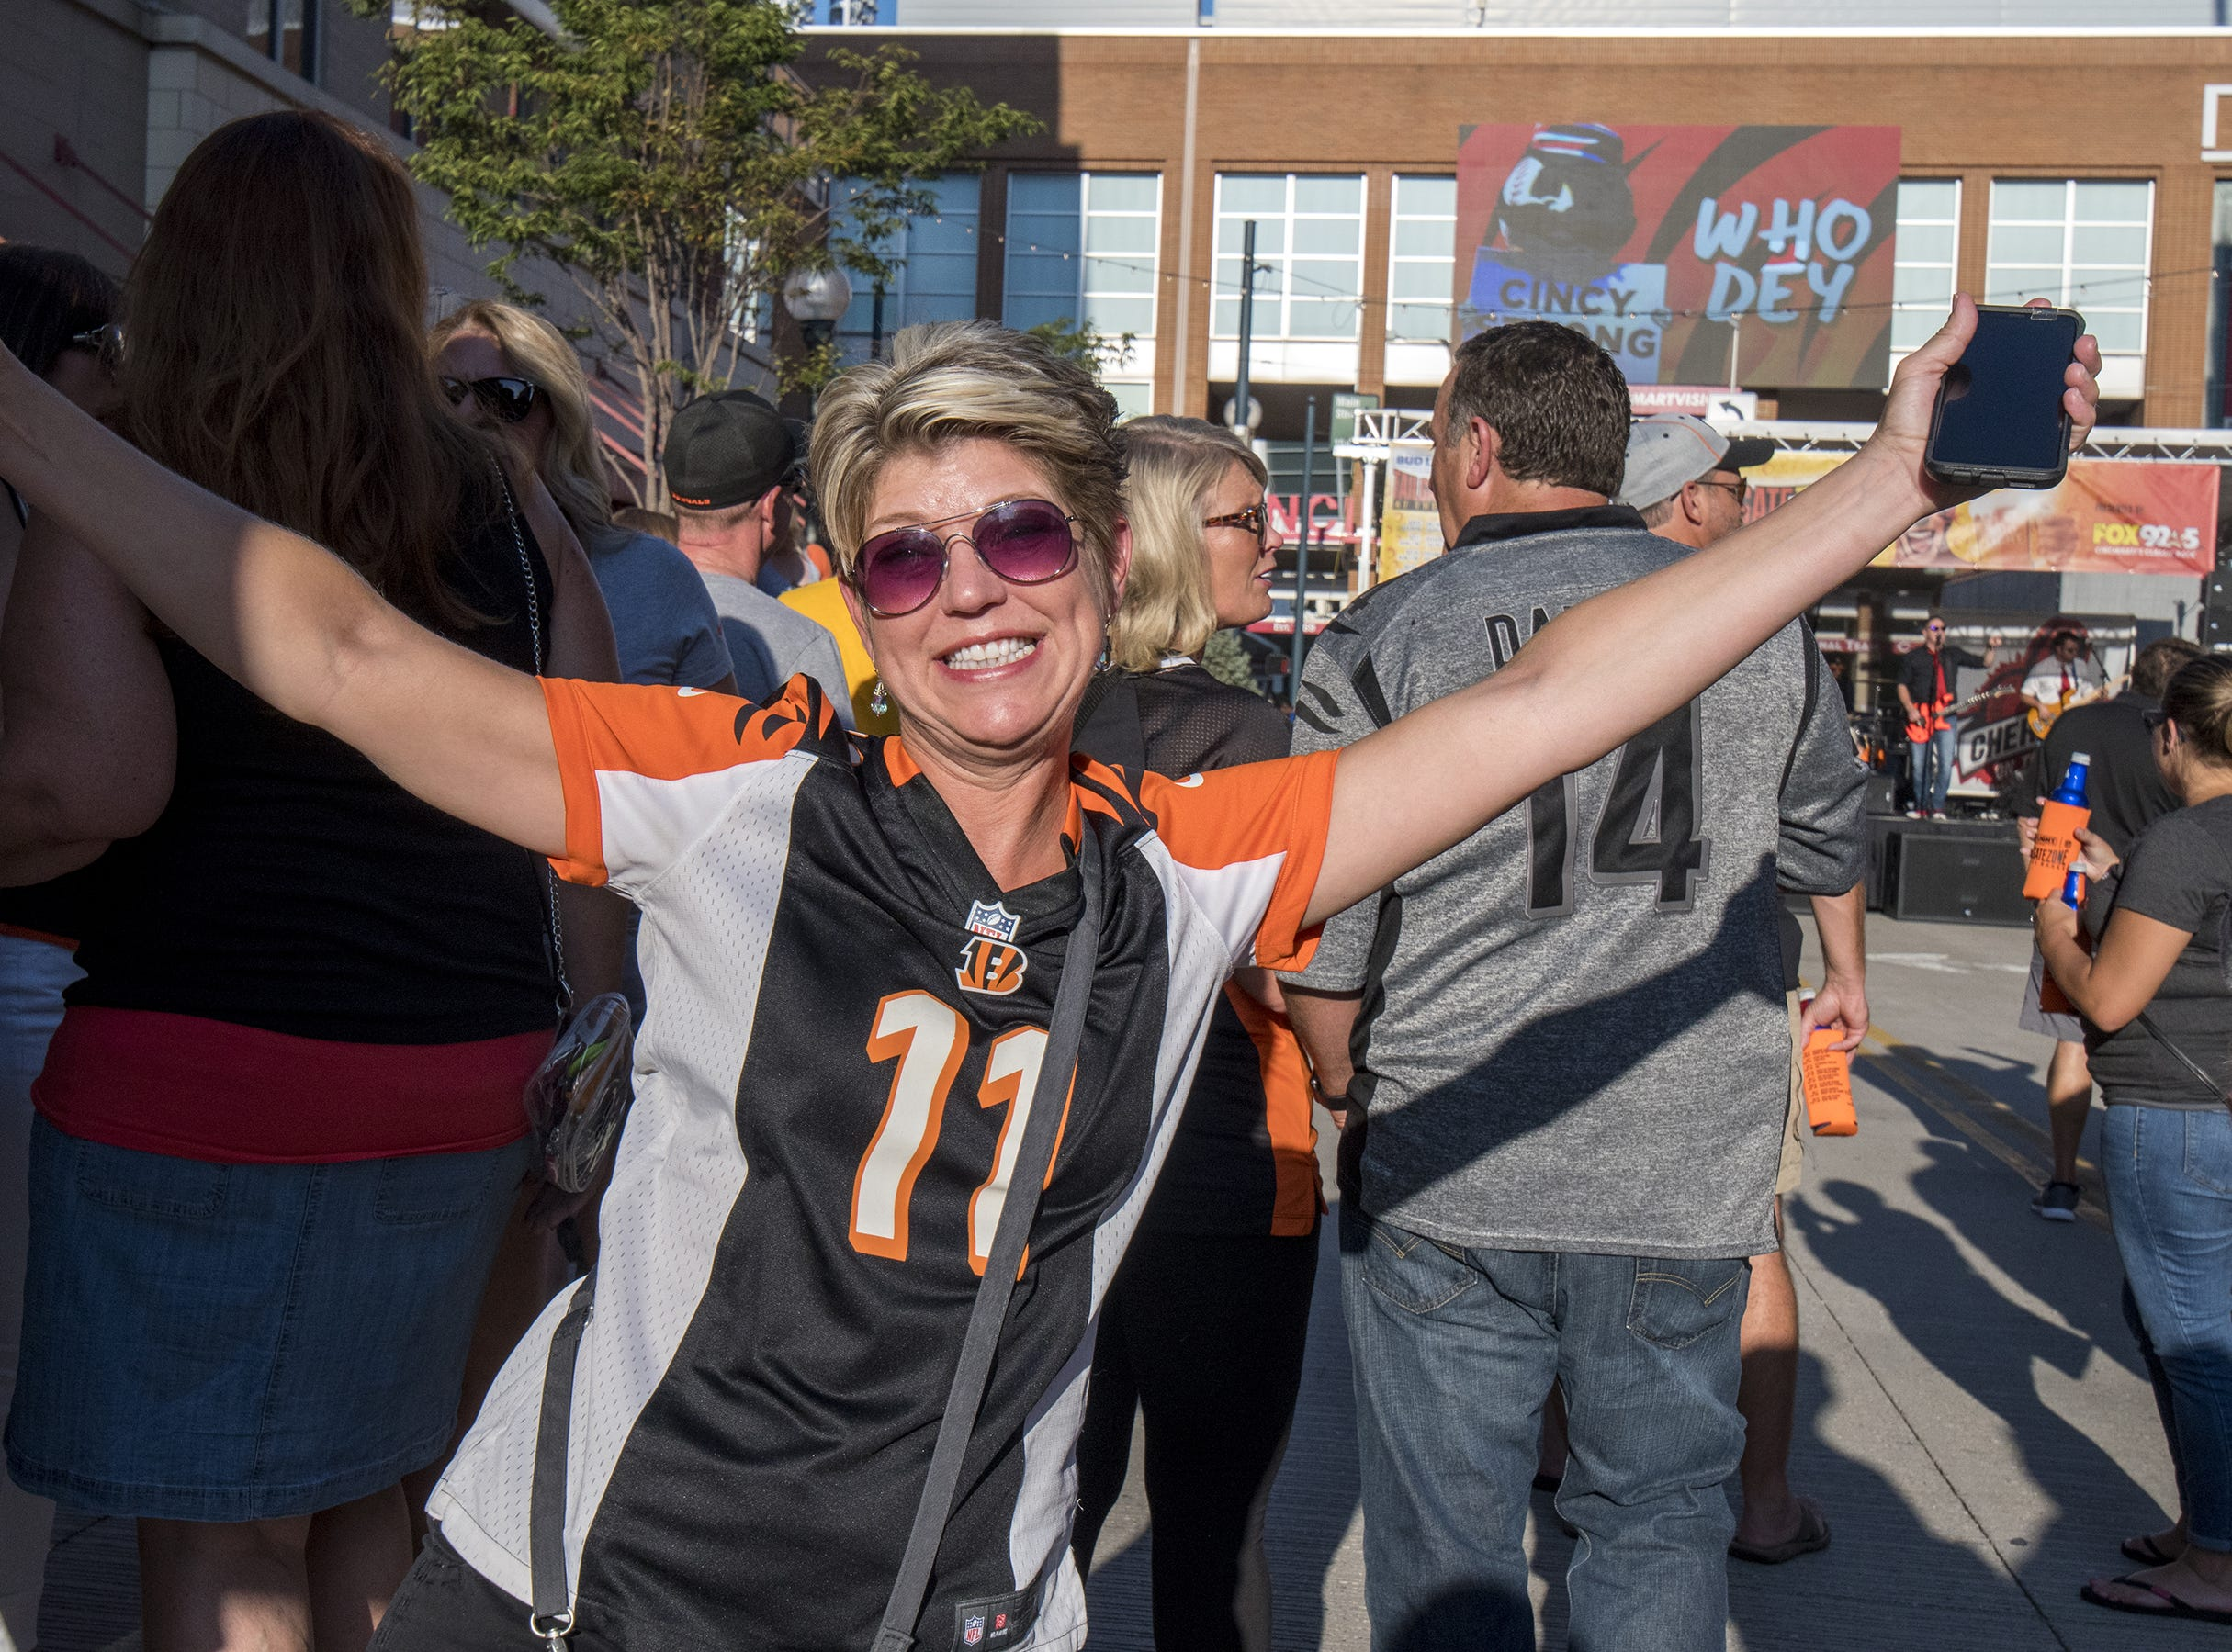 Sheryl Messier of Westwood grabs a drink in the Bud Light Tailgate zone before the Bengals game against the Baltimore Ravens Thursday, September 13, 2018 in Cincinnati, Ohio.